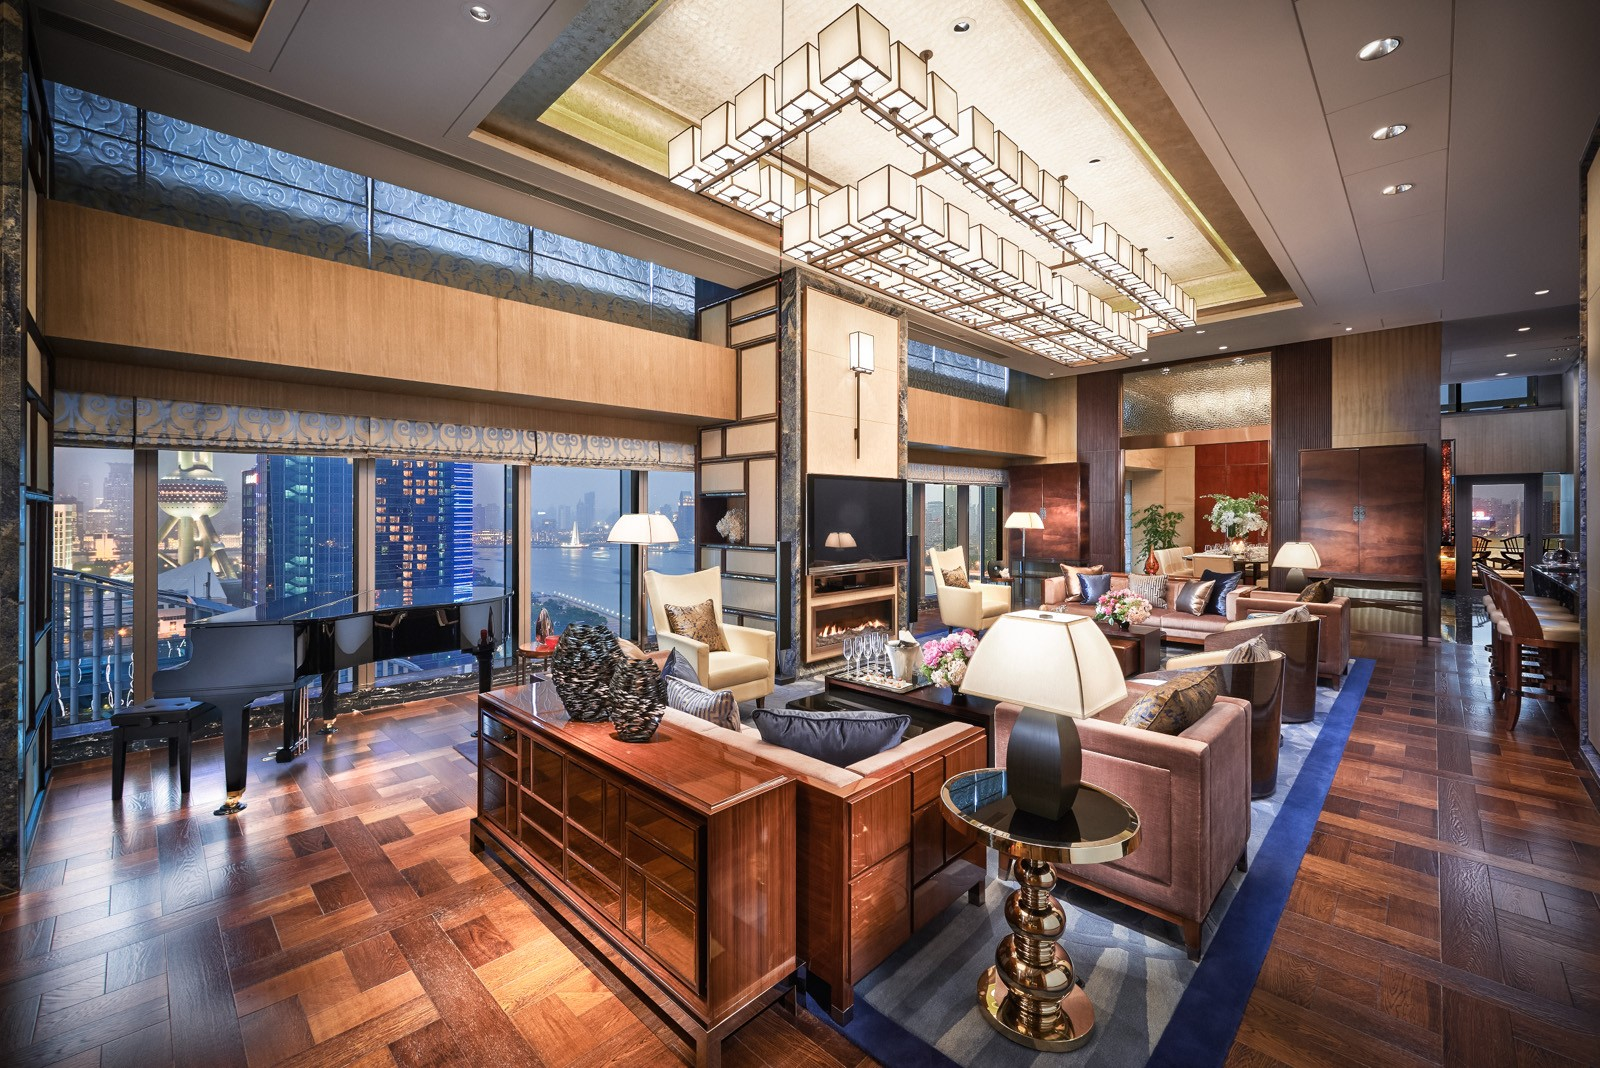 A Night Inside The 10 Most Expensive Hotels In The World